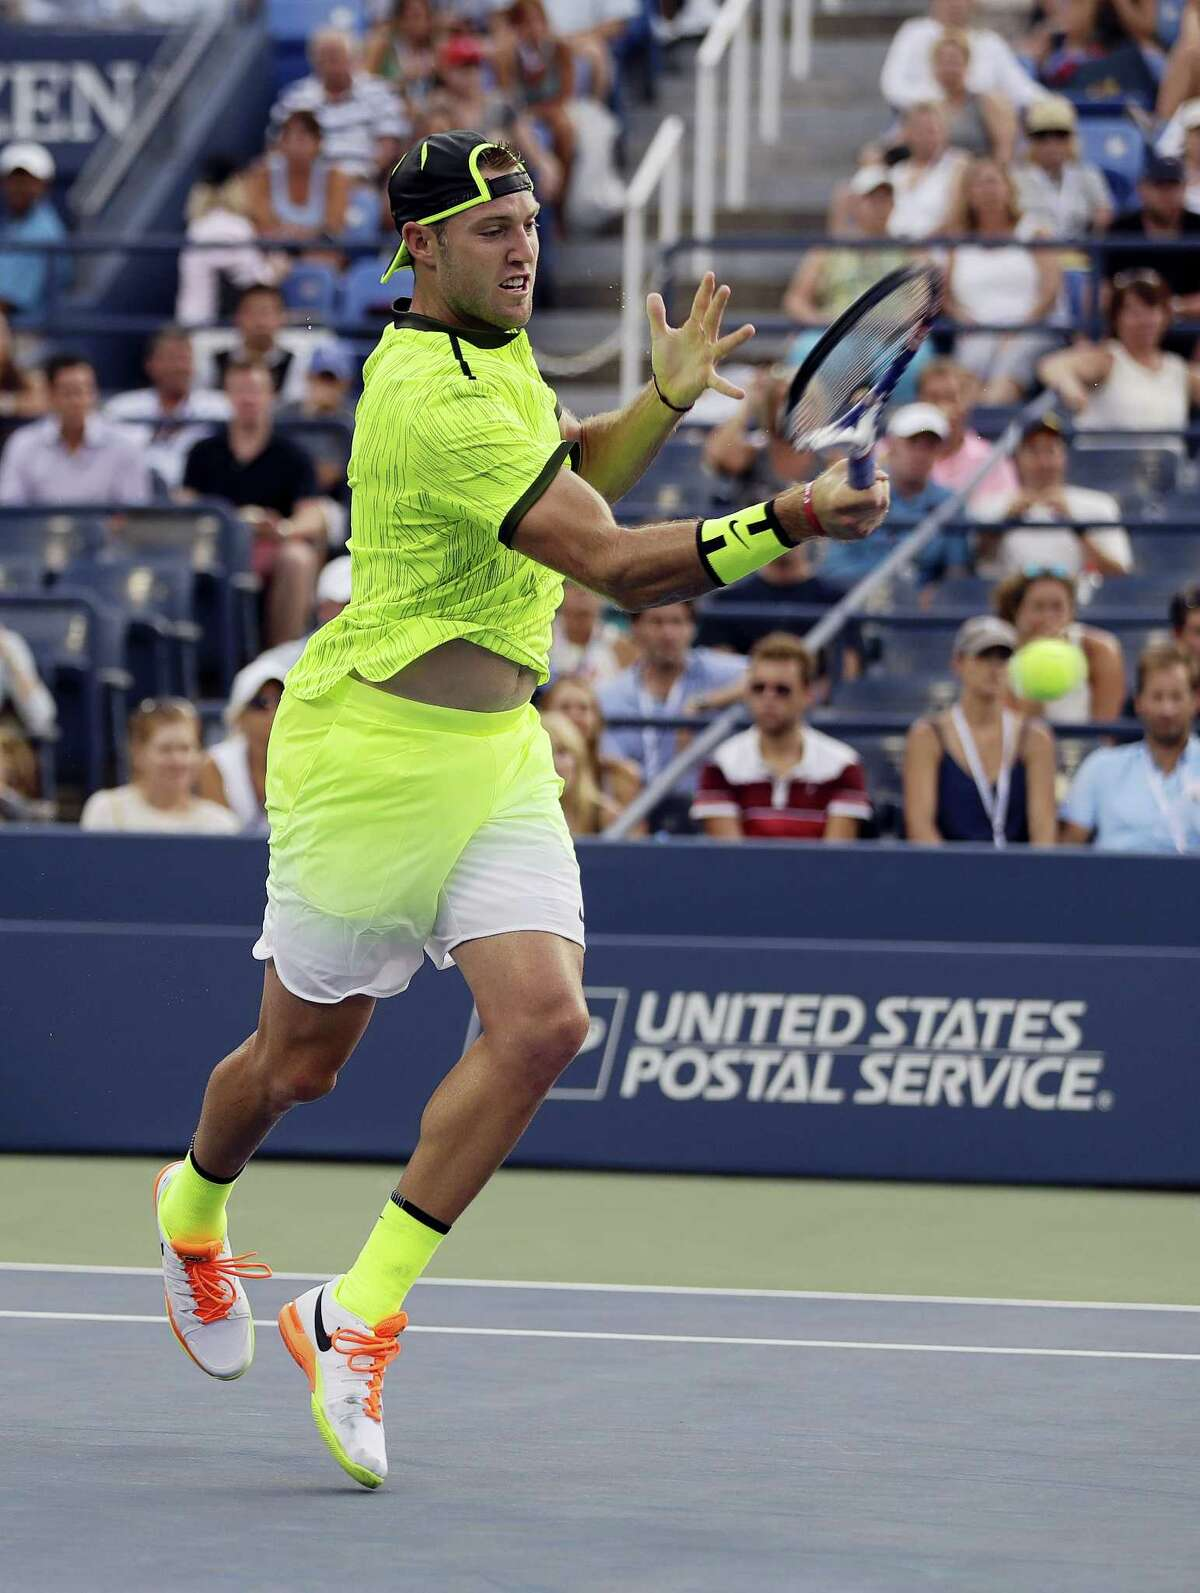 Jack Sock hits a forehand to Mischa Zverev at the U.S. Open on Wednesday.